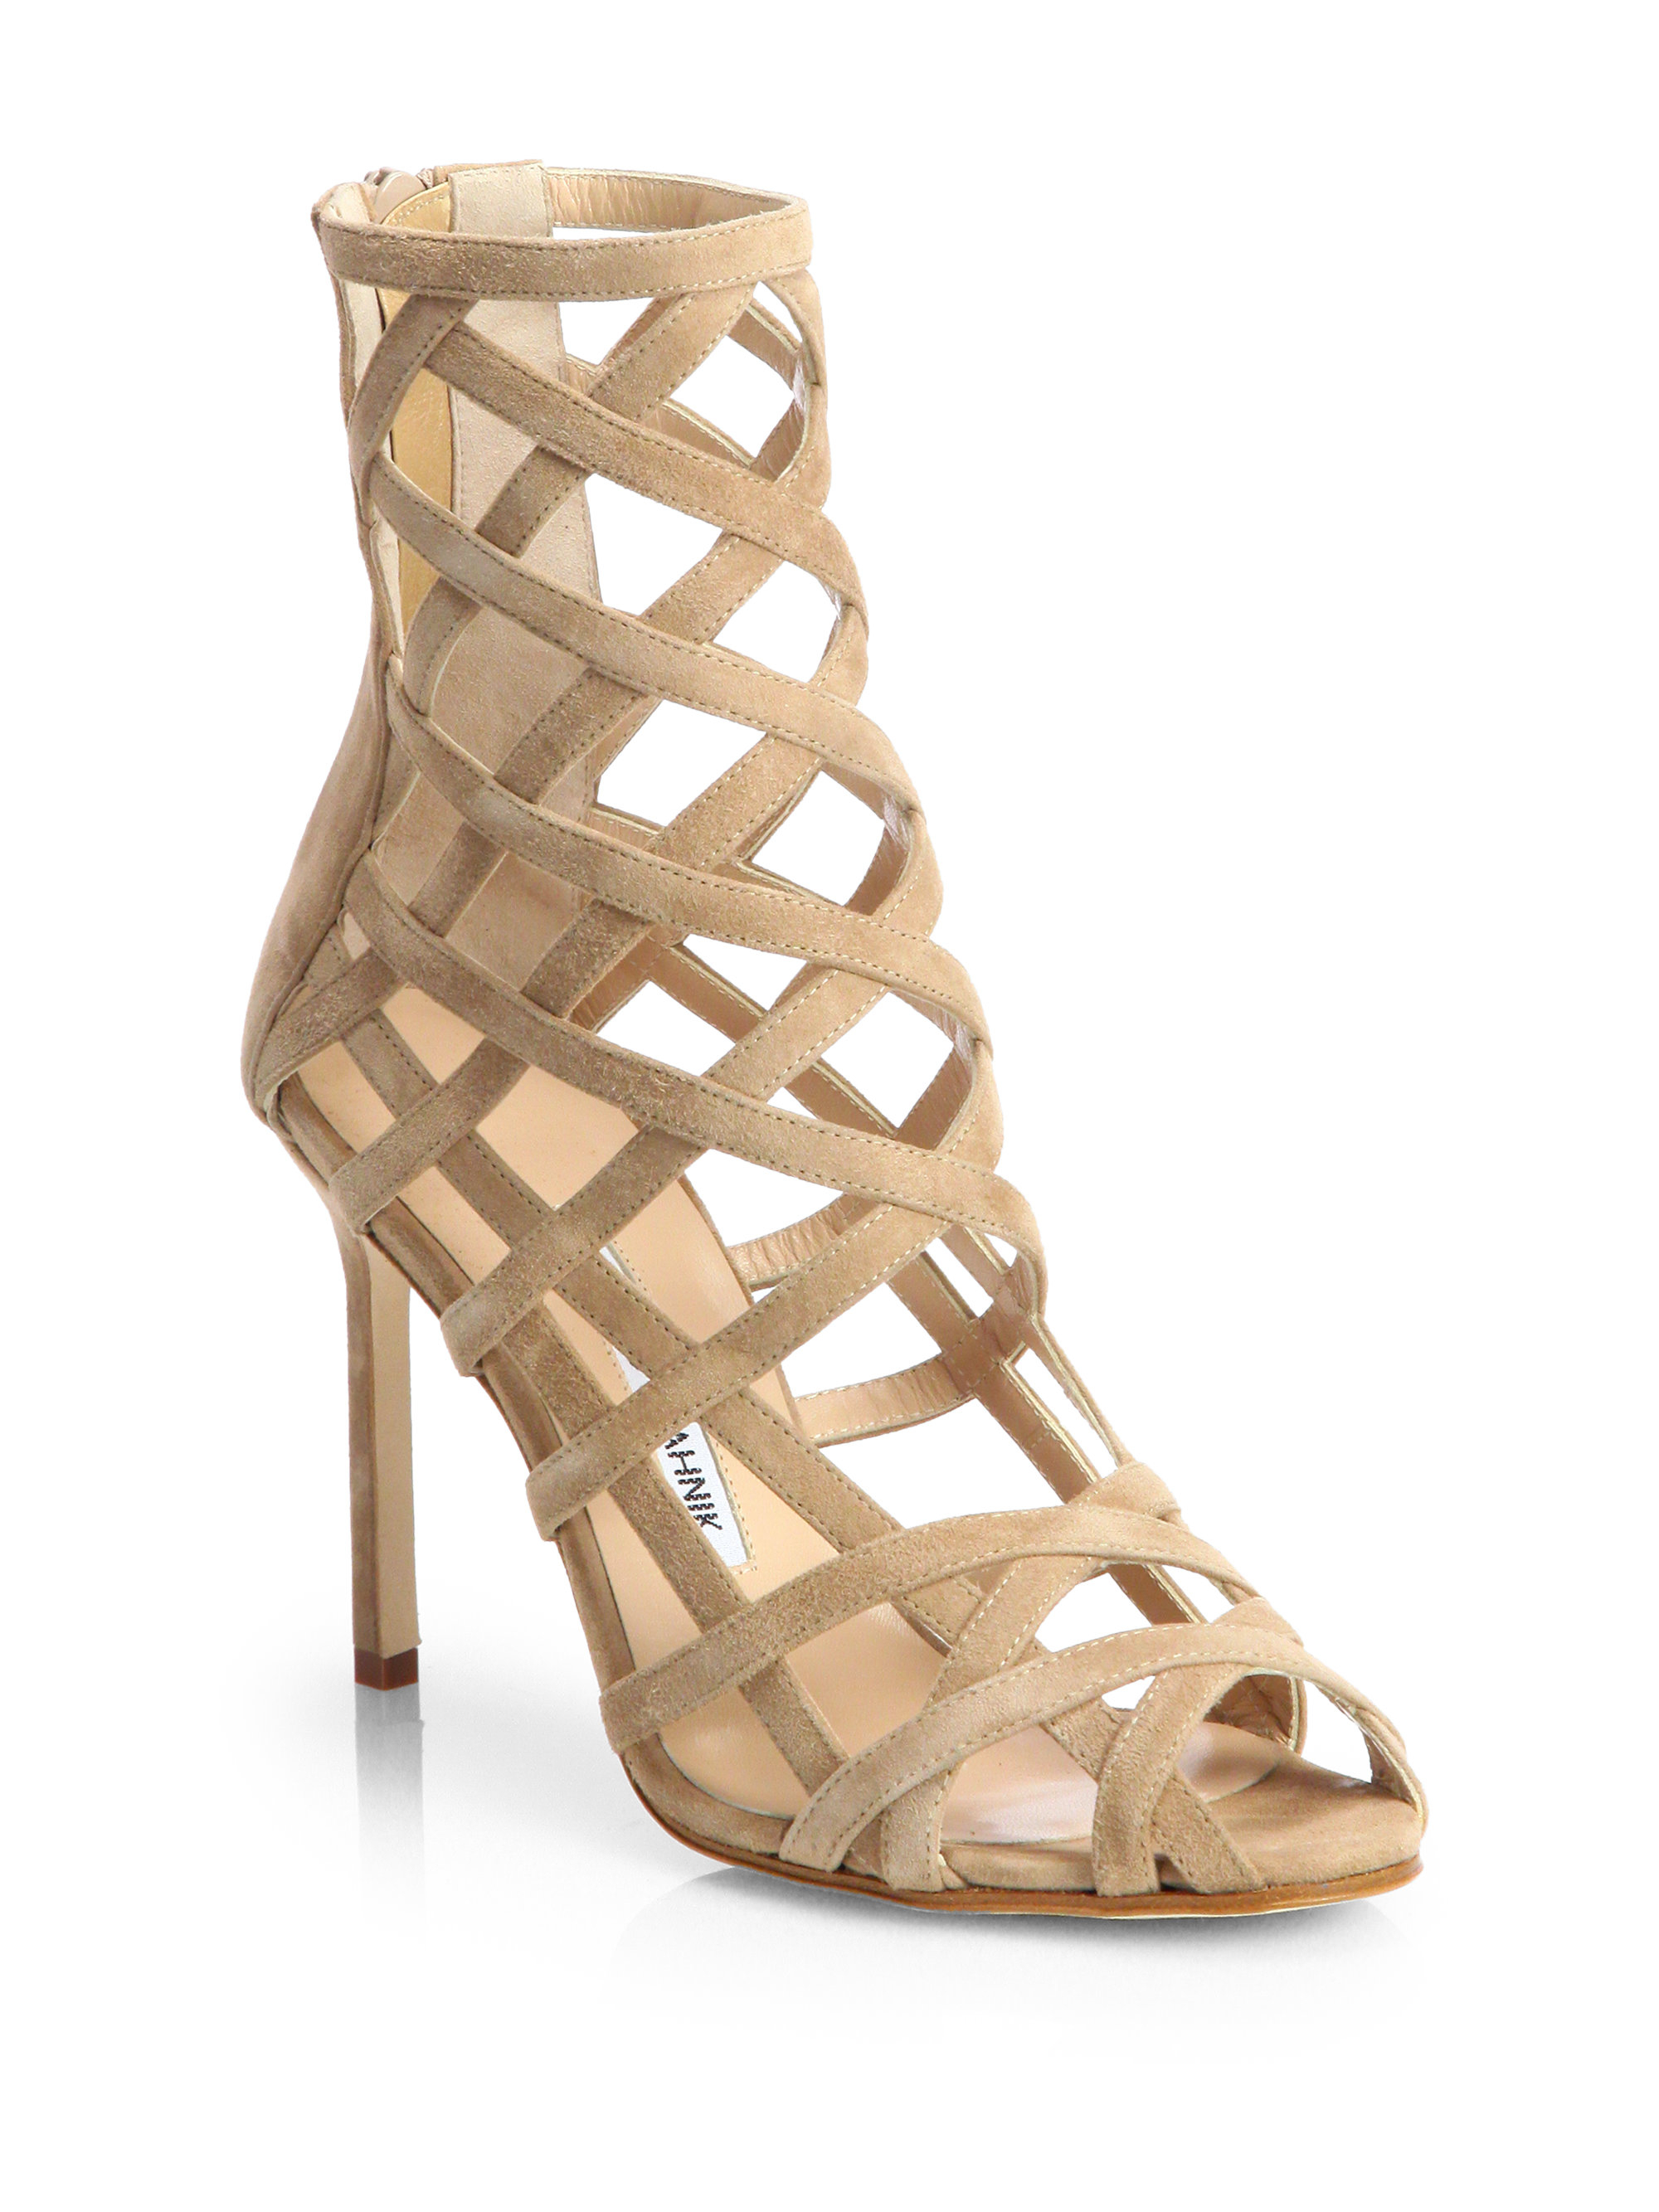 amazing price sale online Manolo Blahnik Suede Caged Sandals outlet excellent outlet free shipping authentic Manchester cheap price buy cheap hot sale fC7lIeqYn2